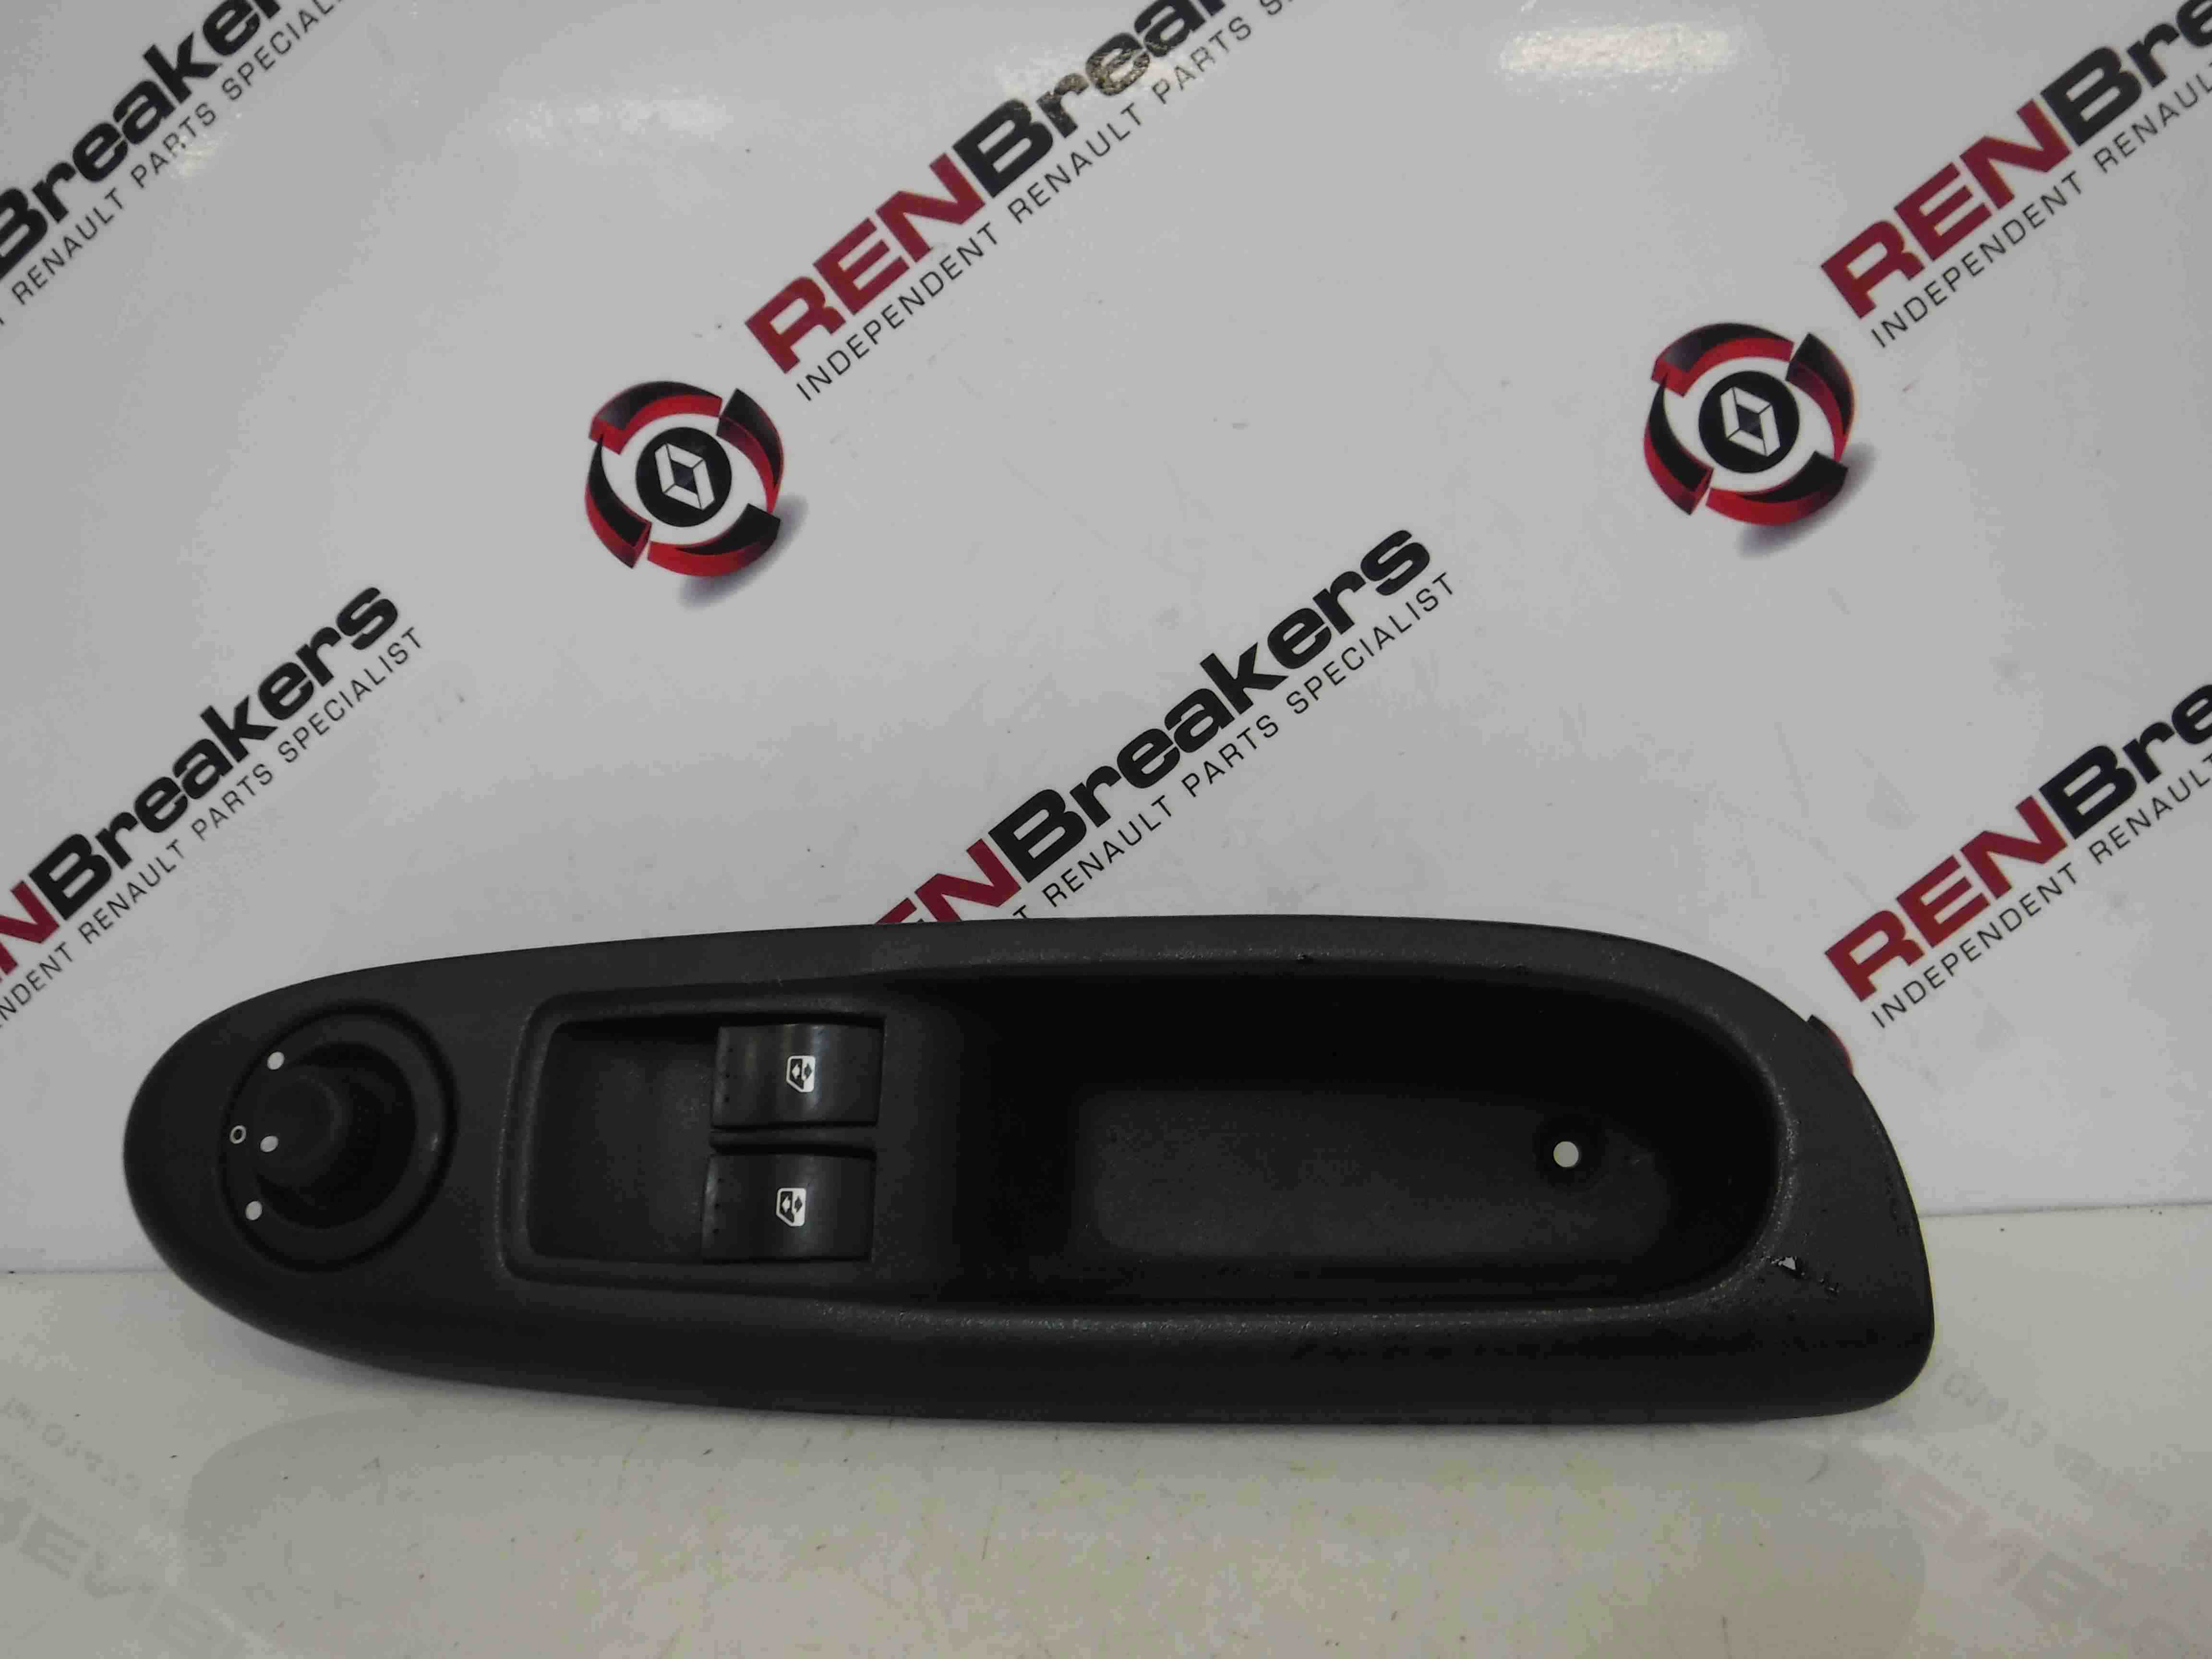 Renault Clio MK2 2001-2006 Drivers OSF Front Window Switches + Panel 8200084012